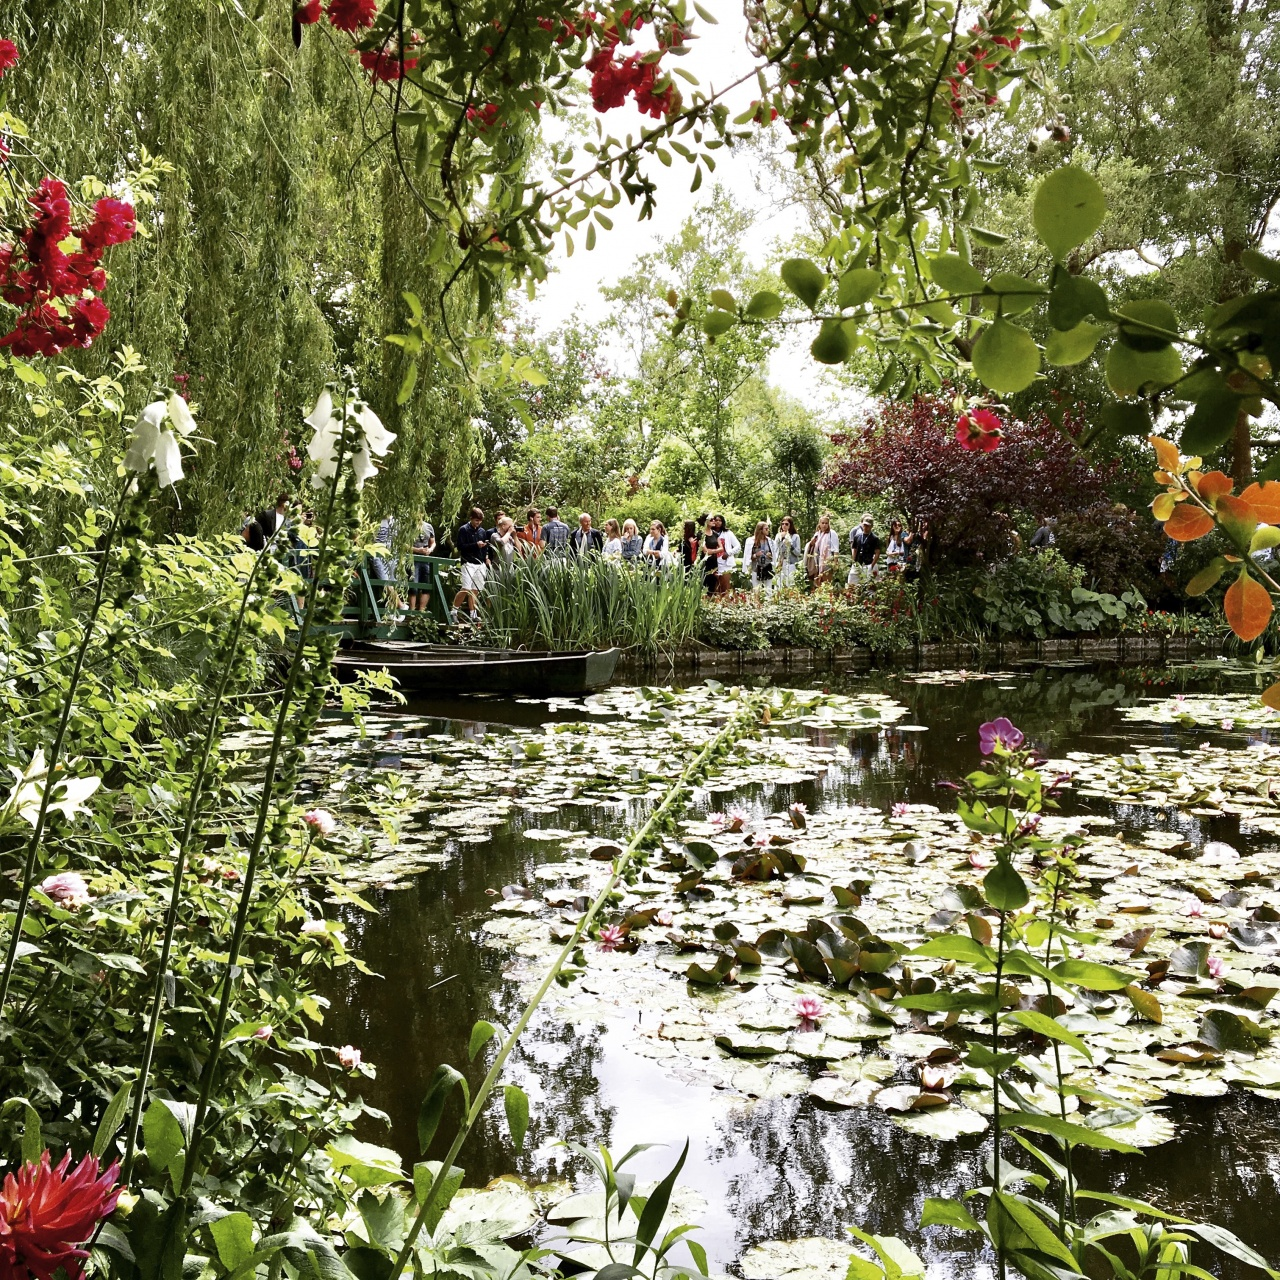 Experiencing nature at Giverny Gardens